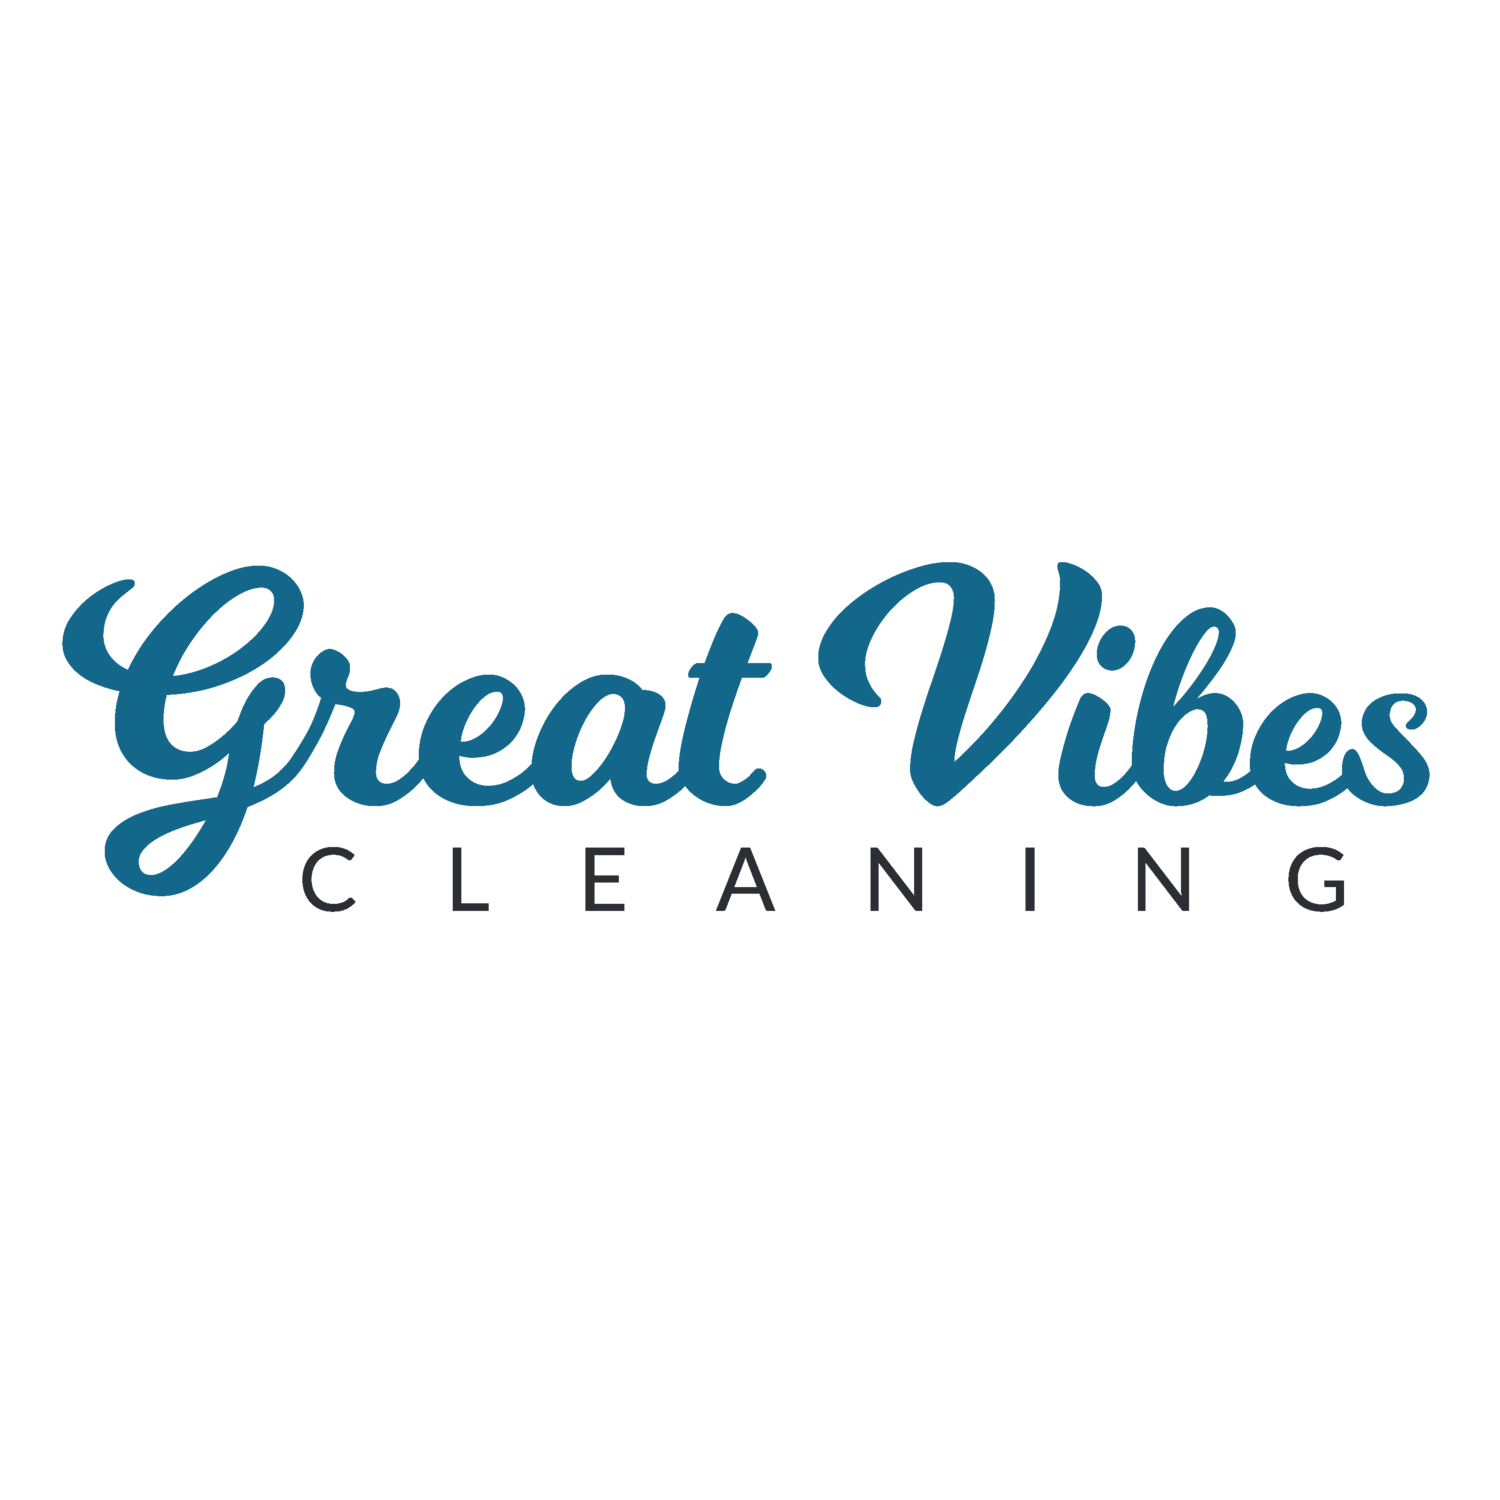 Great Vibes Cleaning